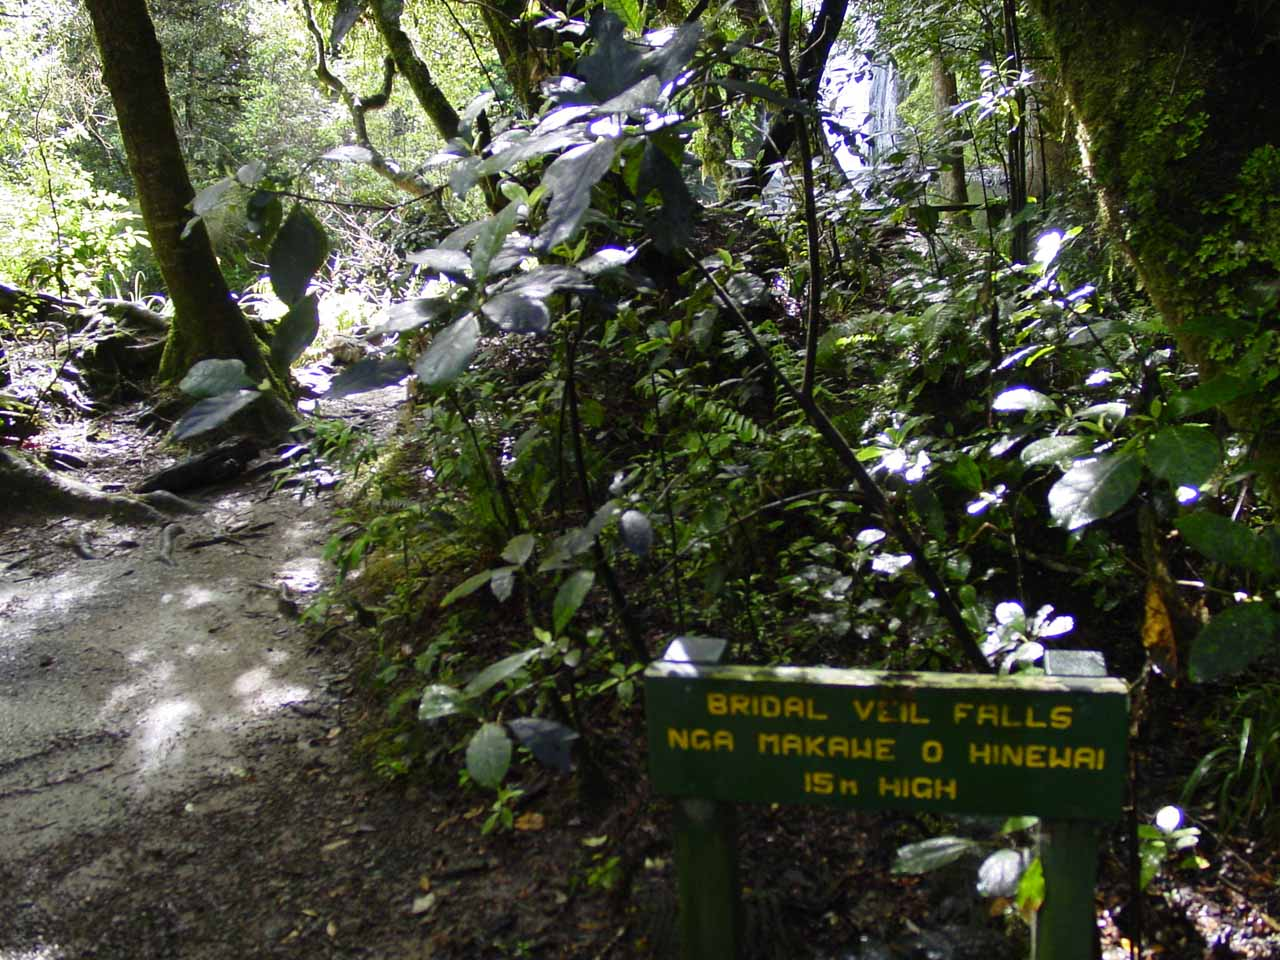 Signposted spur to Bridal Veil Falls